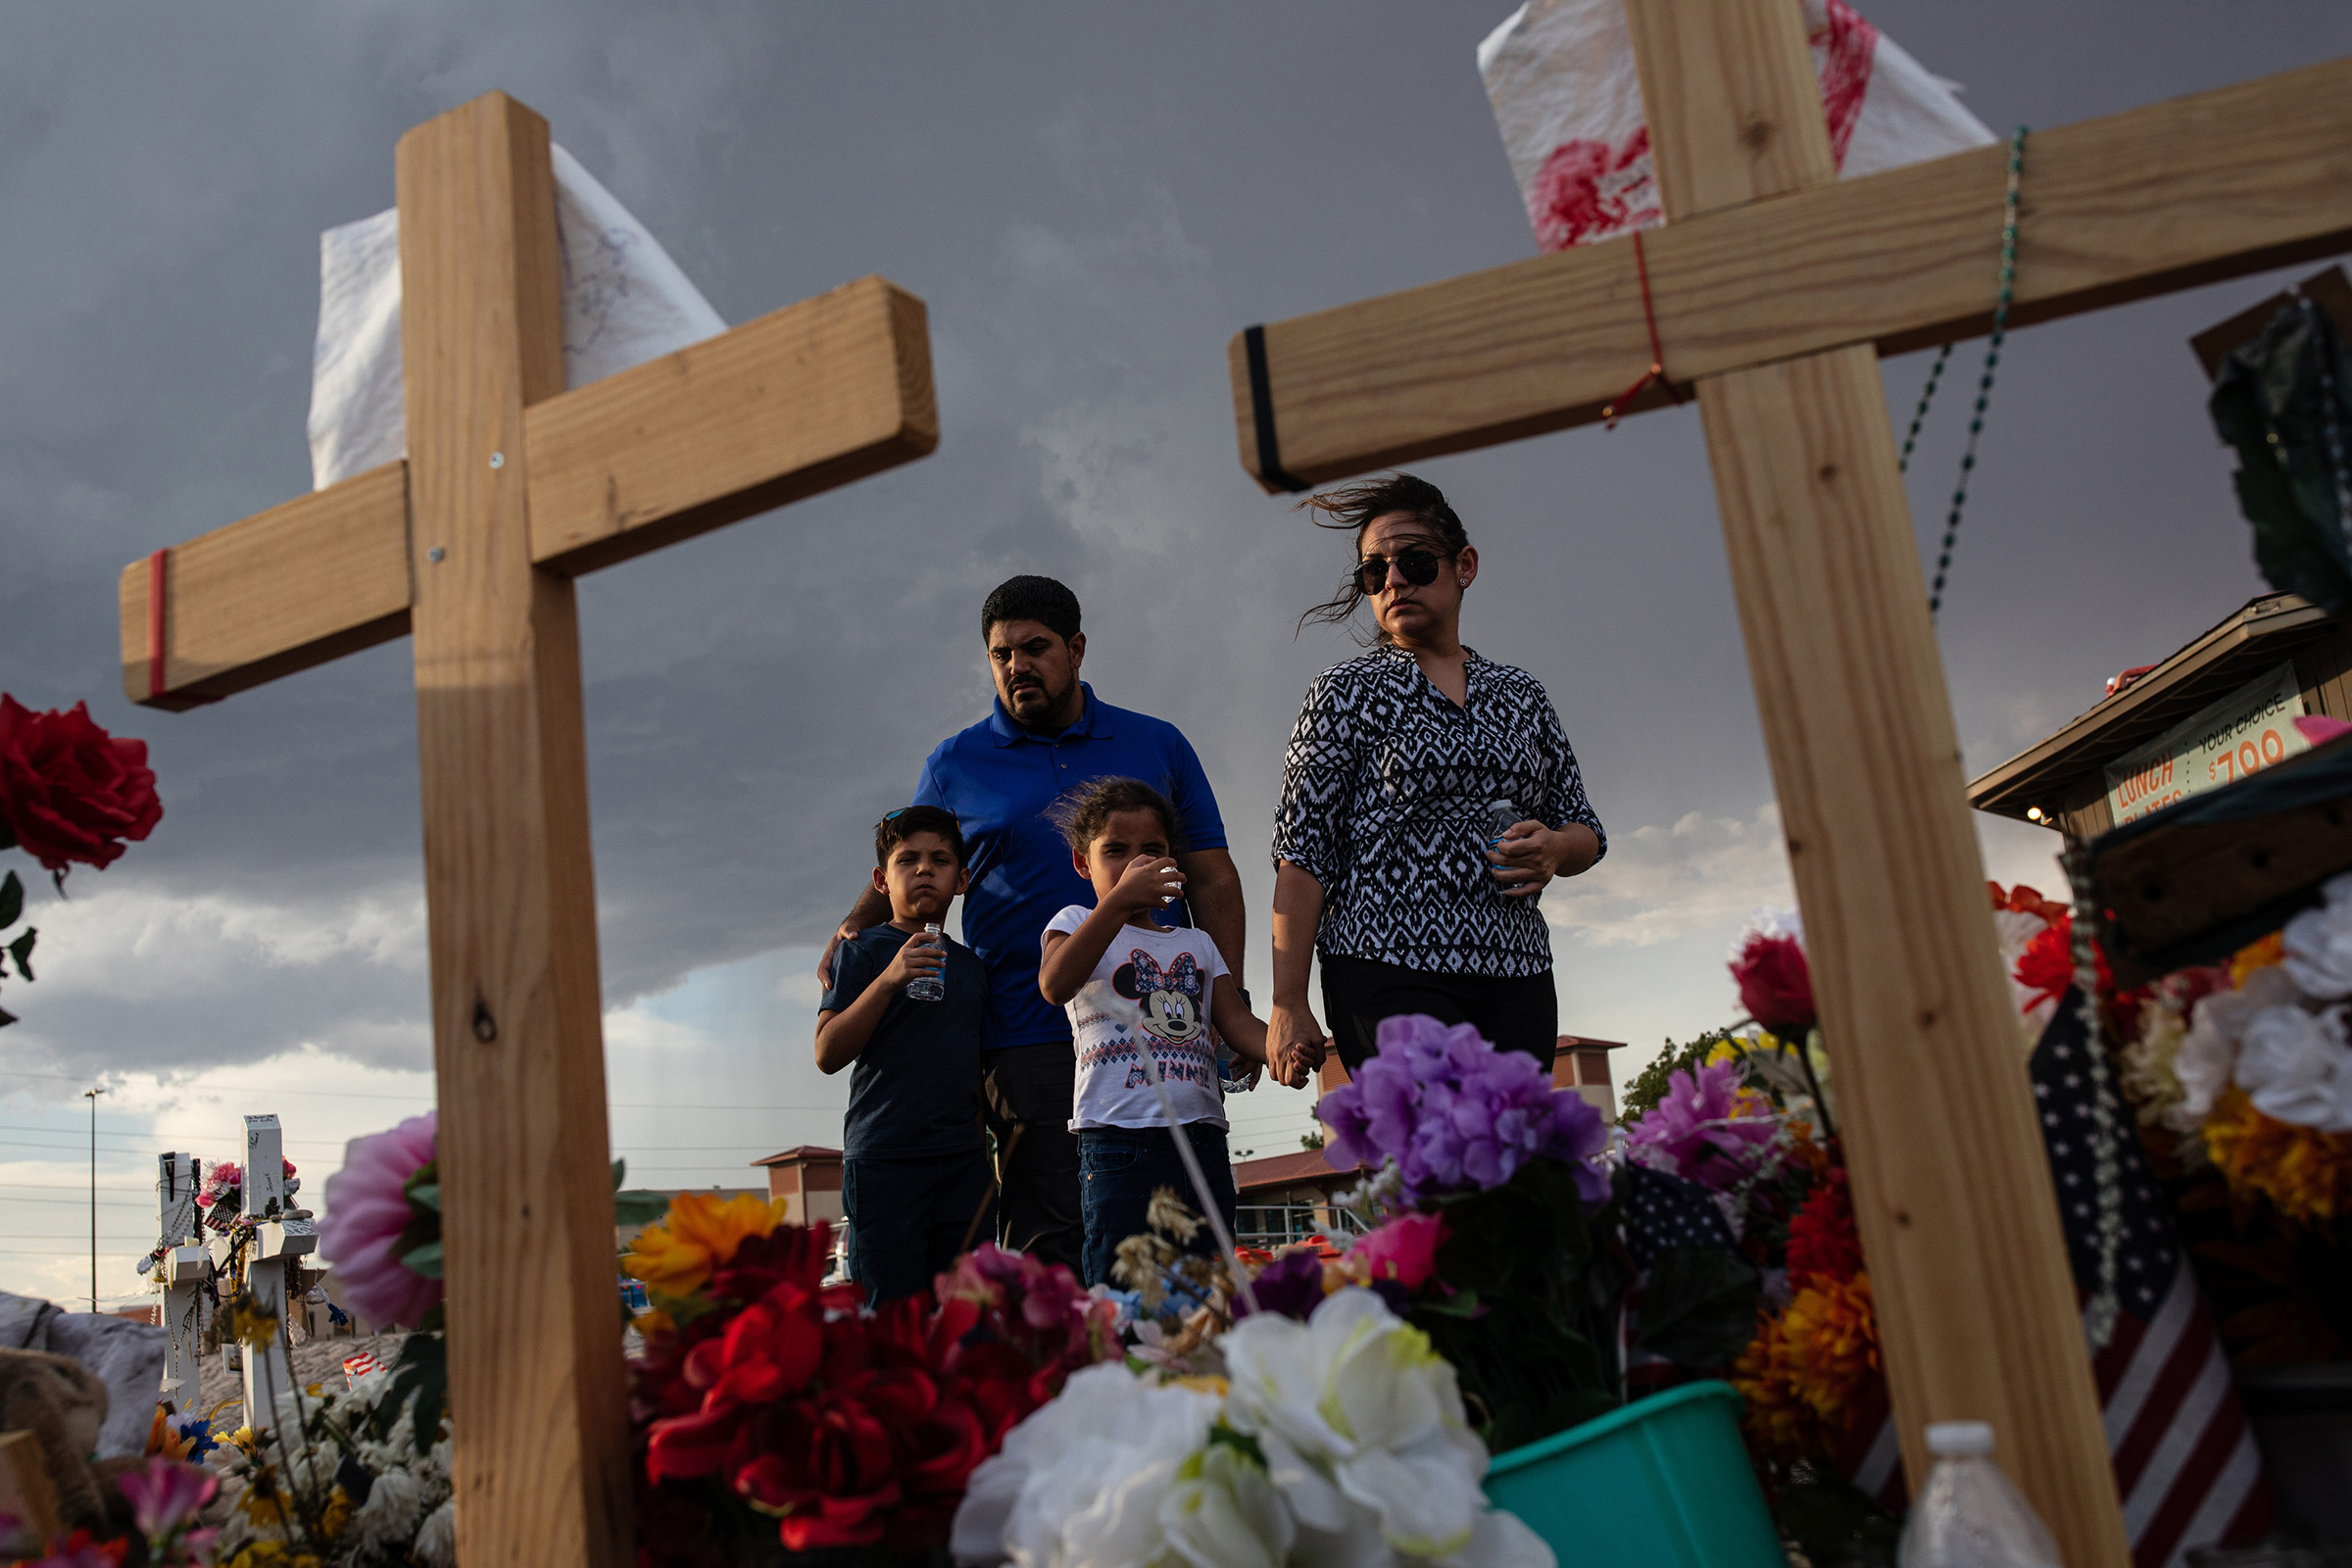 The Valenzuela family visits a makeshift memorial for victims of the shooting that killed 22 people at a Walmart store, in El Paso, Texas, on Aug. 27, 2019.